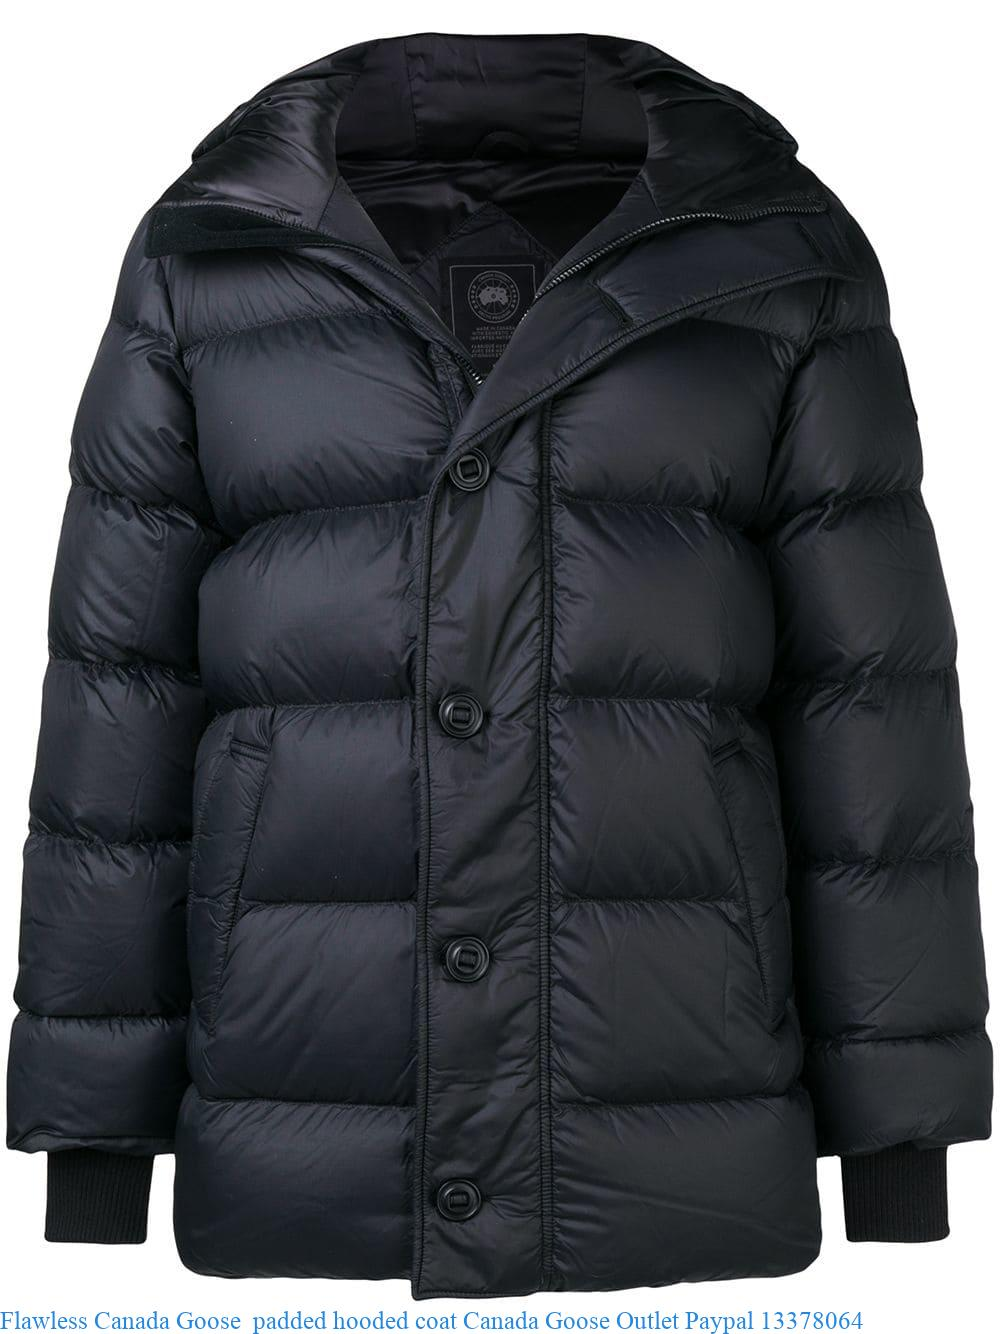 67d643889 Flawless Canada Goose padded hooded coat Canada Goose Outlet Paypal ...